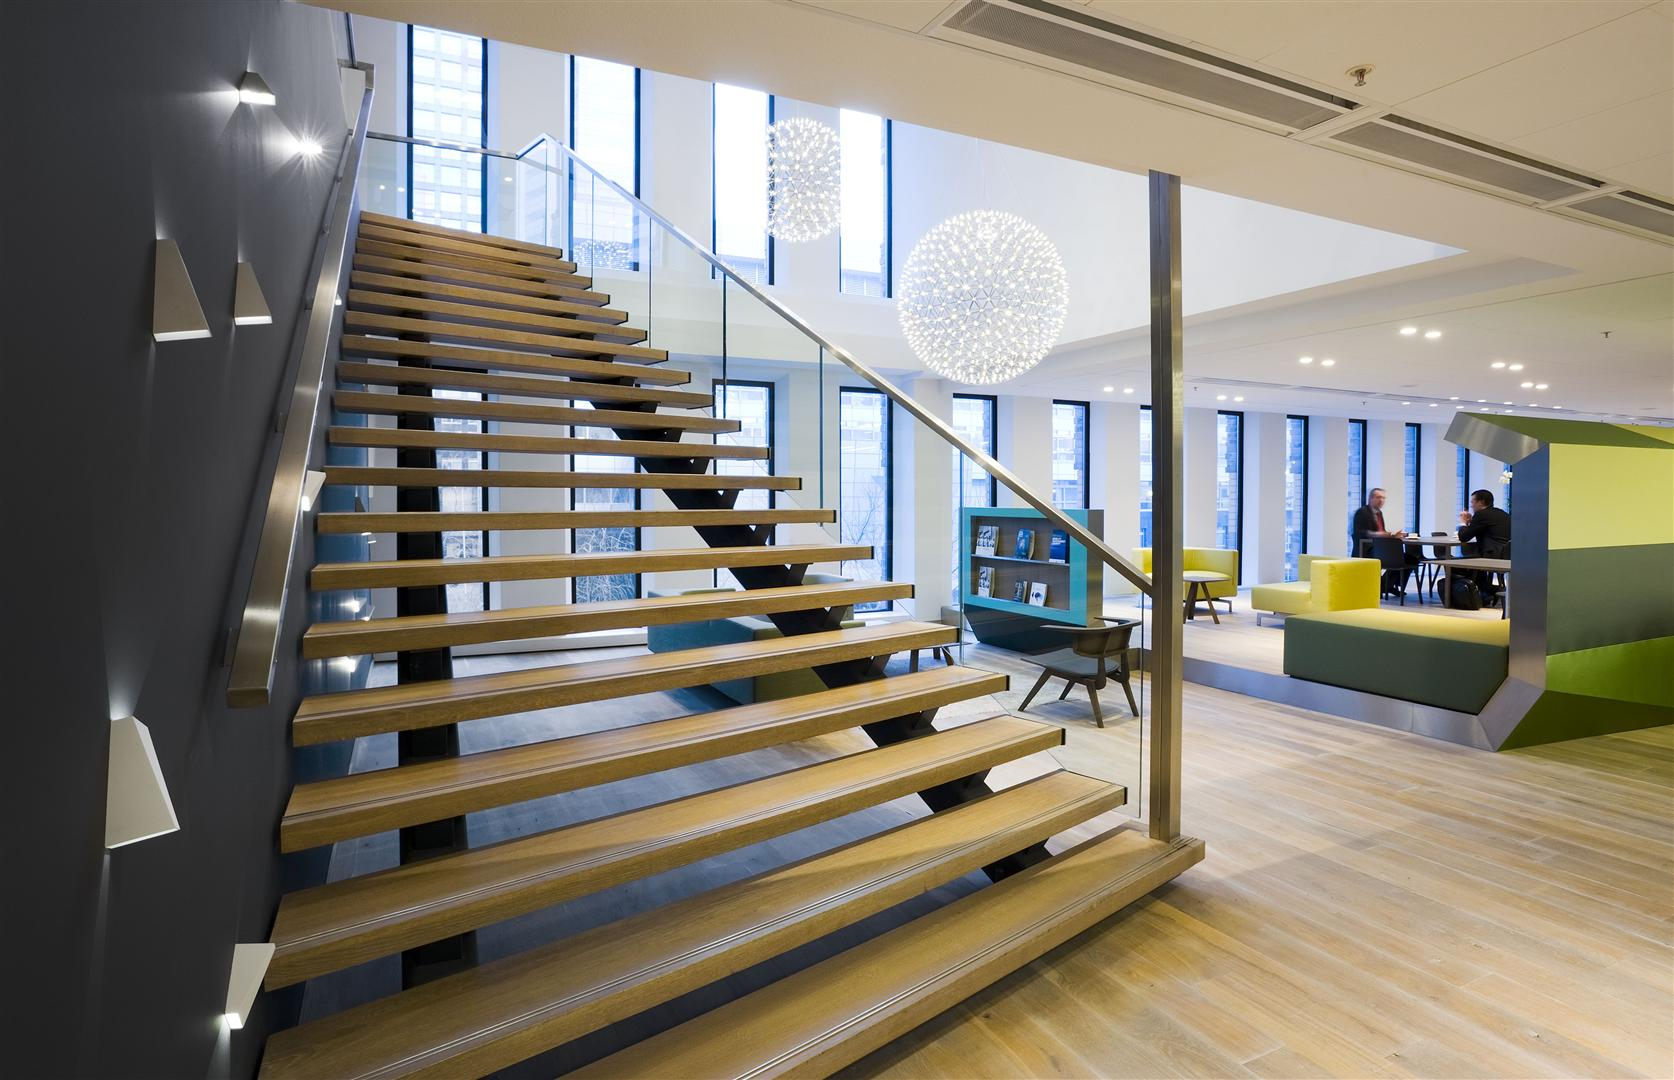 CBRE - Case Study - CBRE HQ The Netherlands - Symphony Offices, Zuidas, Amsterdam - Interior 01